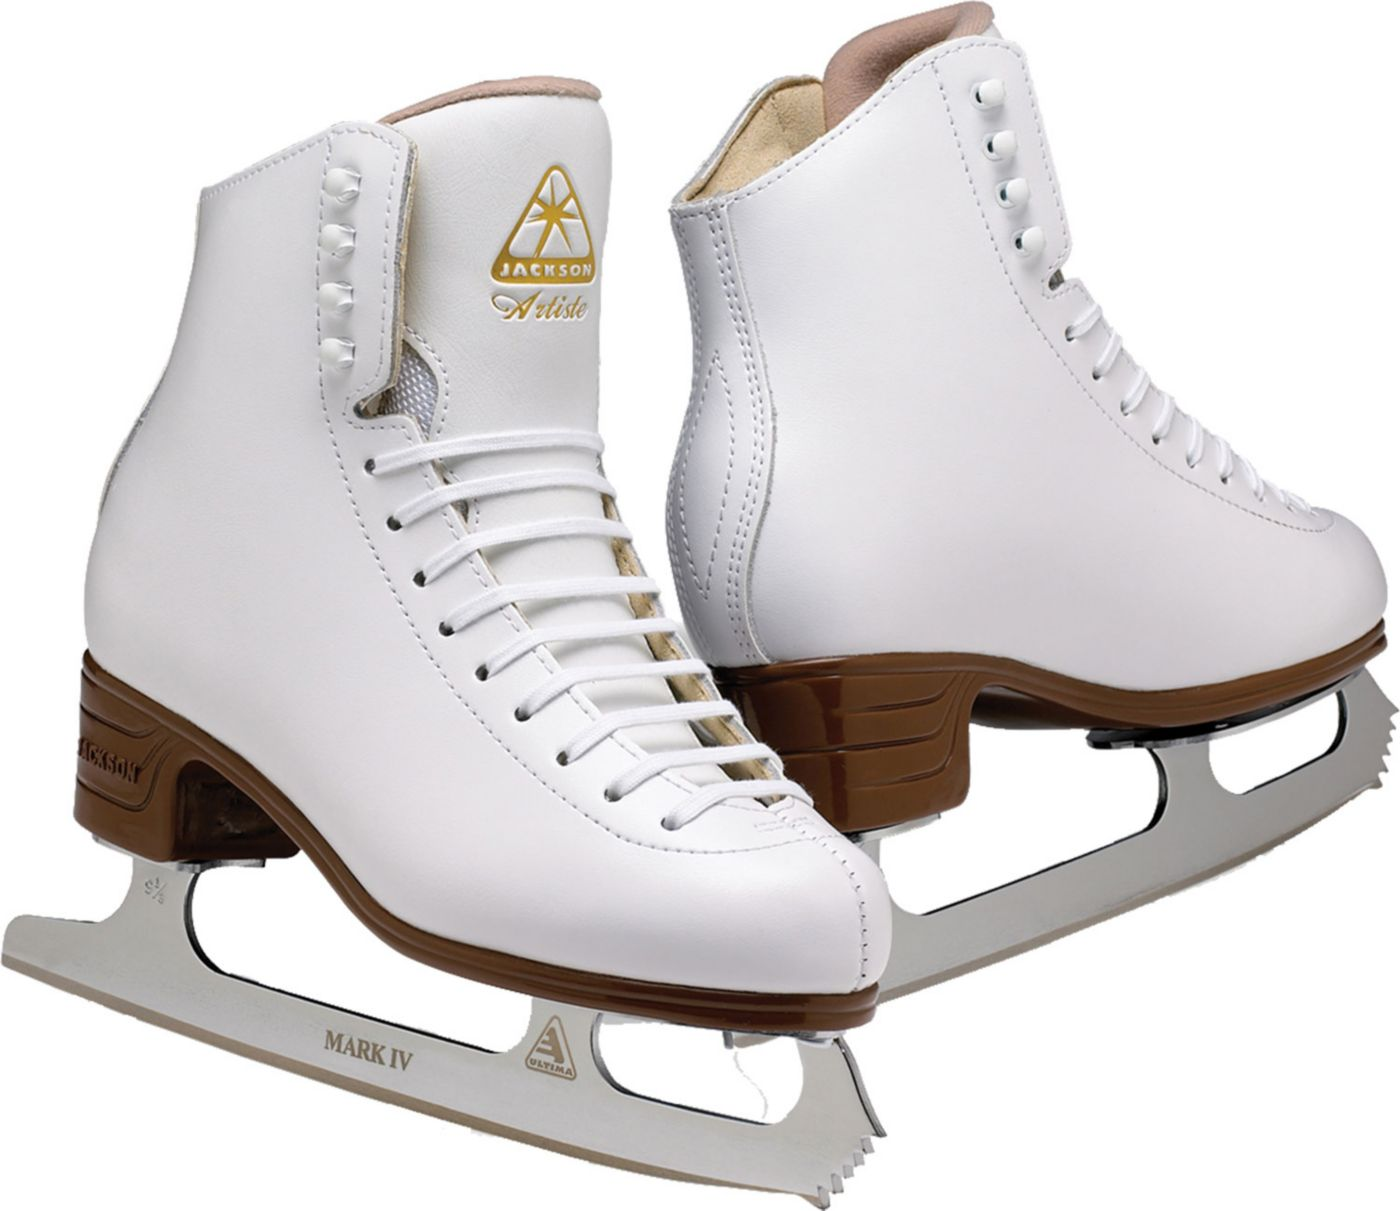 Jackson Ultima Girls' Artiste Figure Skates